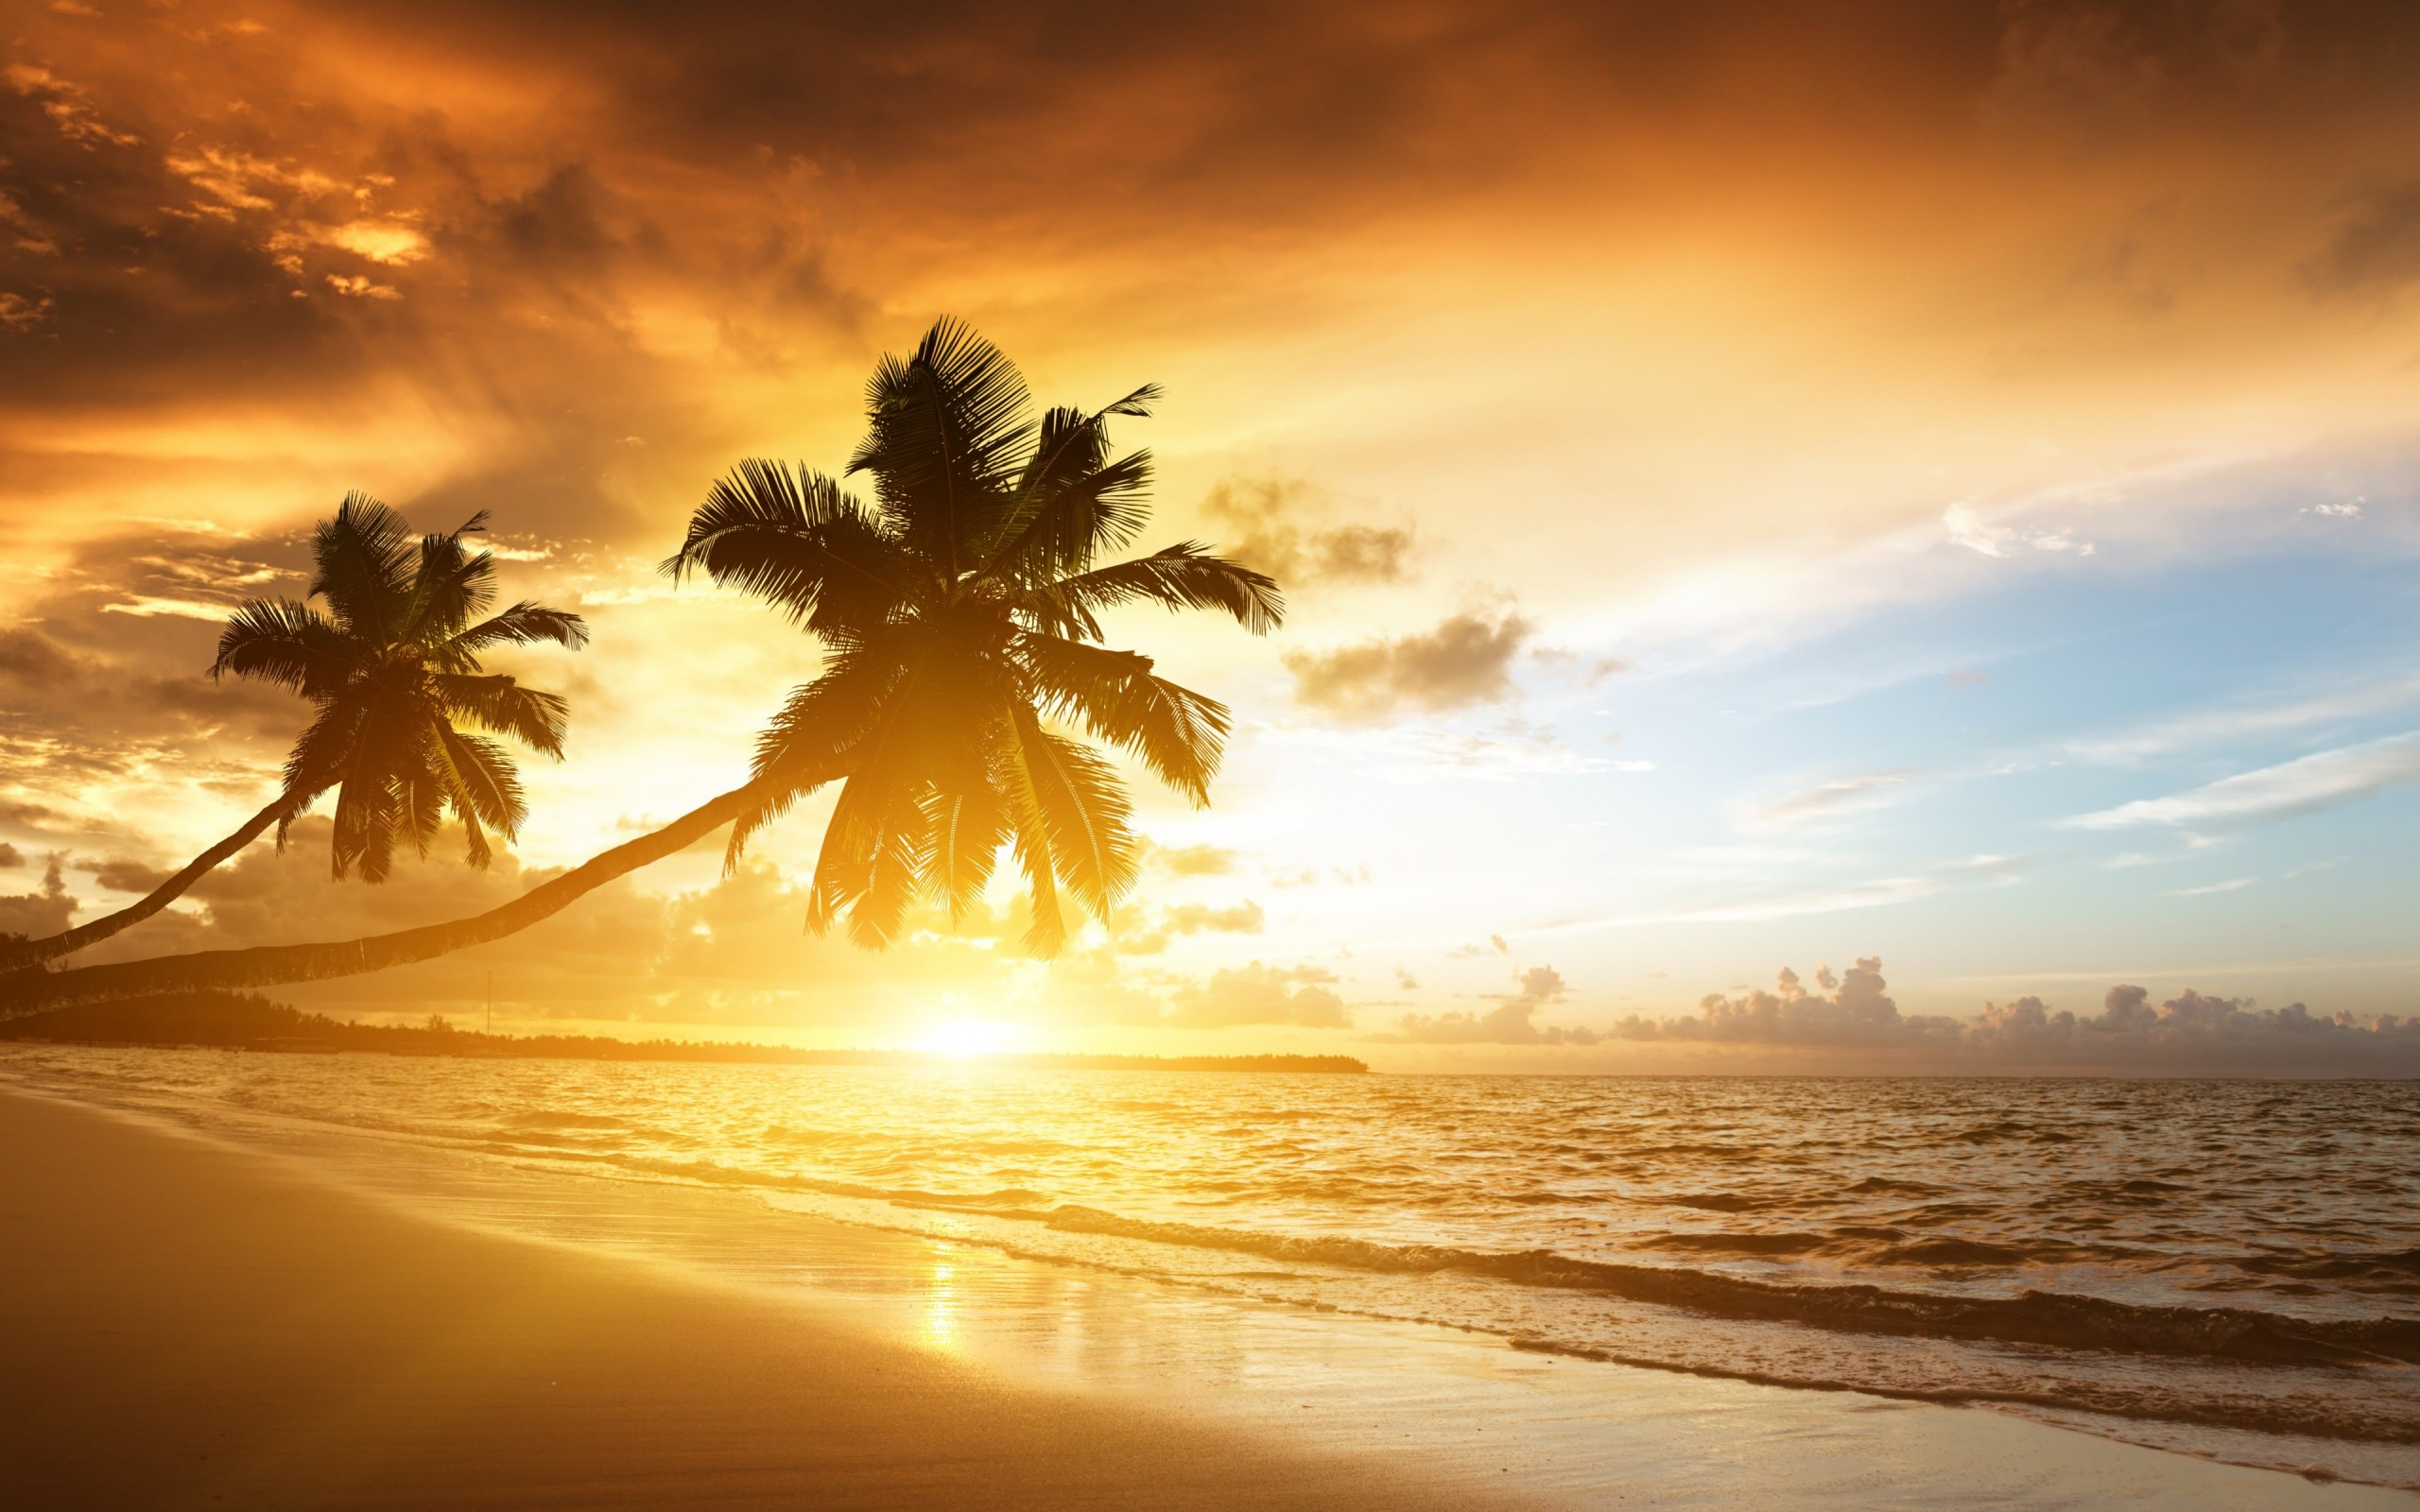 Beach With Palm Trees At Sunset Wallpaper for Desktop 2560x1600